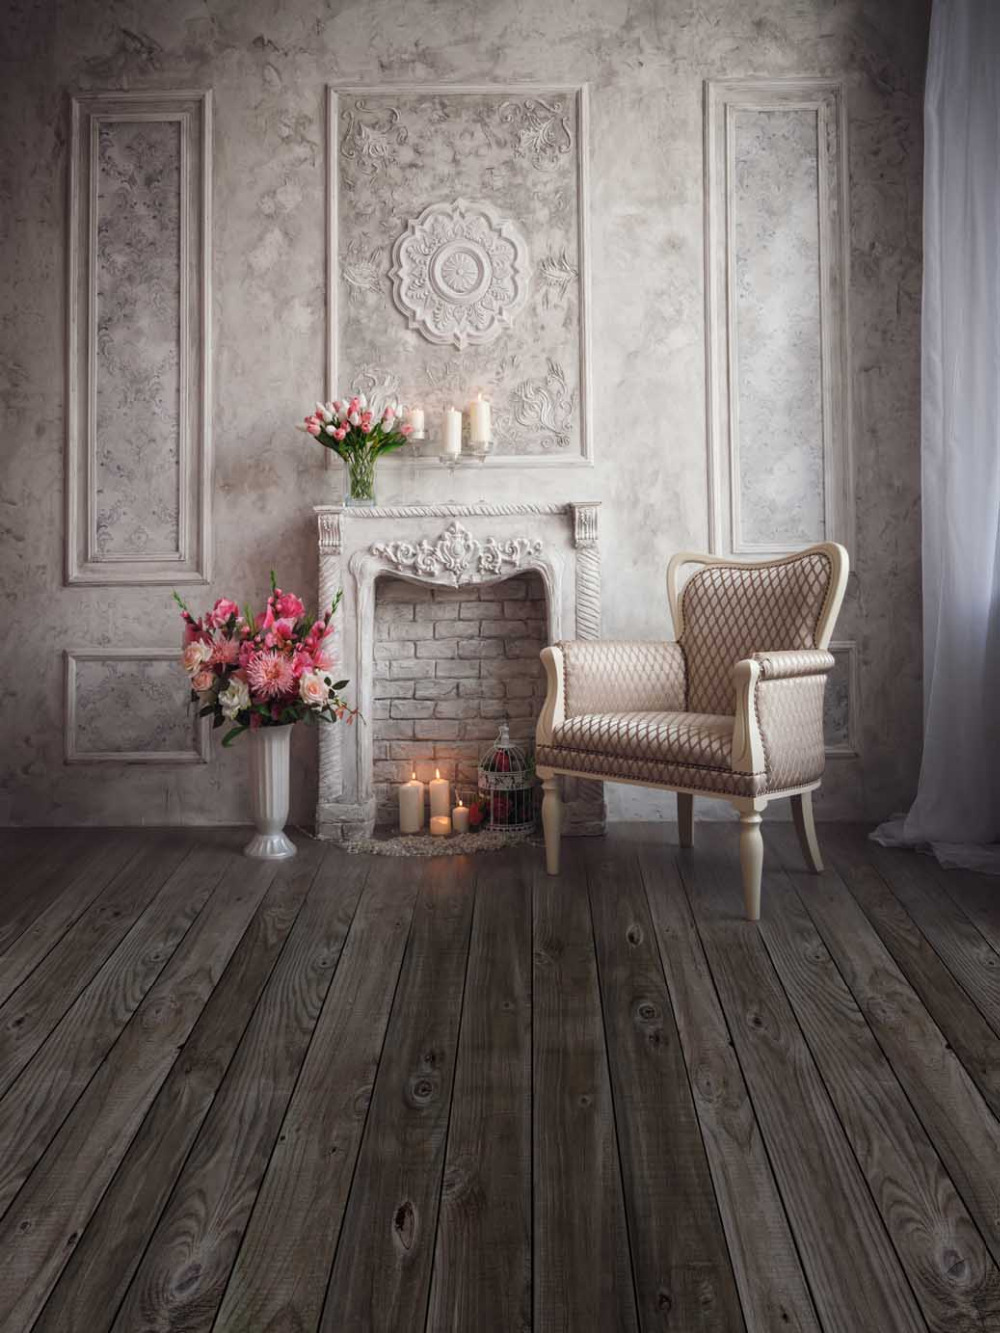 studio background backdrop fireplace custom chair wall candles pot flowers vinyl foto props 240cm 360cm interior zoom days candle